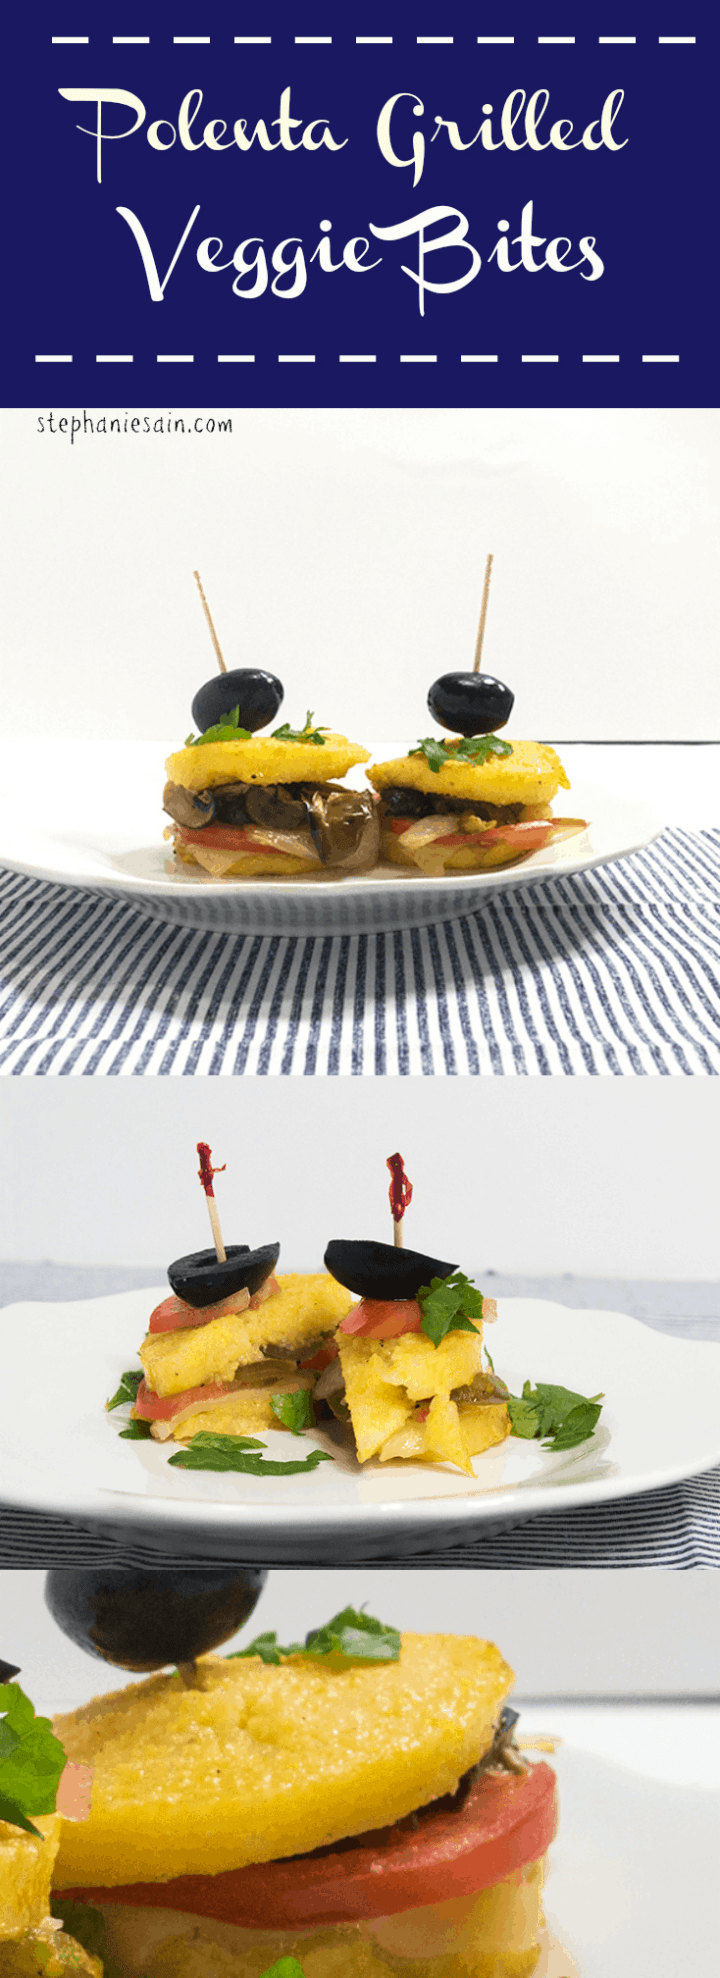 Polenta Grilled Veggie Bites are an easy to prepare snack or appetizer. Gluten Free and Vegetarian and are customizable to suit your taste.